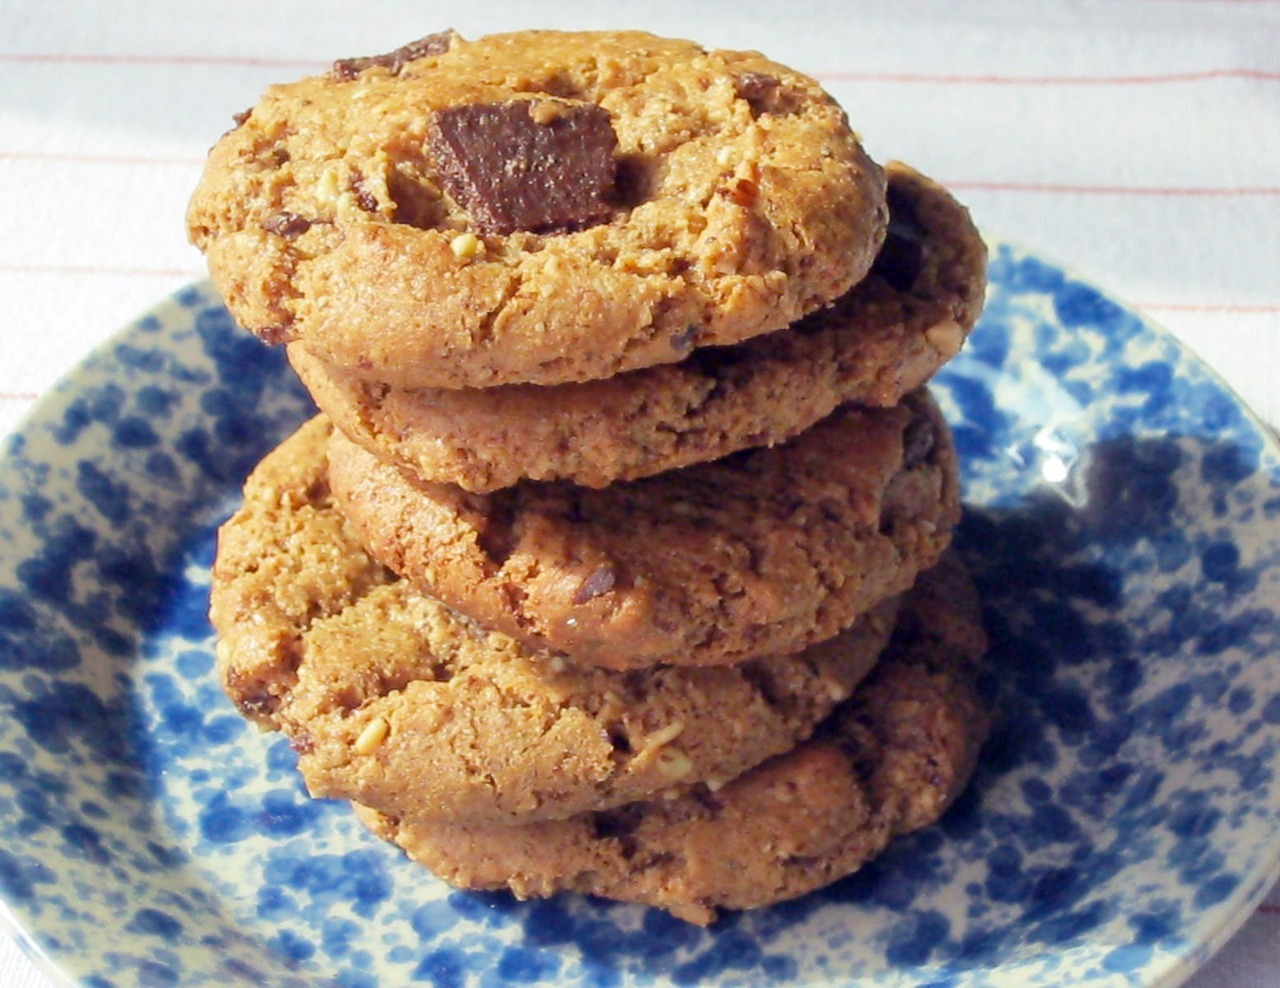 "robotheartrecipes:  Flourless Almond Butter Cookies with Mexican FlairMakes about 2 Dozen I have been majorly craving cookies lately, but with the end of summer heat wave we had been experiencing, baking was unappealing. Since temps dropped this weekend, I decided it was time to bust out the ol' cookie sheets. I wanted to make a cookie that would compliment the Mexican-influenced flavors of my meal so I decided to adapt one of my favorite cookies with some Mexican flair. I used piloncillo an unrefined sugar commonly used in Mexican baking. It comes in little compressed cones and tastes a lot like brown sugar mixed with molasses. I also incorporated Mexican chocolate, which is a sugary sweet chocolate laced with cinnamon. Mexican chocolate is readily available in many grocery stores—check the Hispanic or ethnic foods section. Piloncillo may be more challenging to find and might require a visit to a specialty store in some areas. These cookies turned out wonderful—we almost spoiled our dinner gobbling them down beforehand! INGREDIENTS 1 cup almond butter 3/4 grated or finely chopped piloncillo (or equal amount of brown sugar + 1 teaspoon molasses) 1 large egg, lightly beaten 1/2 teaspoon baking soda 1/4 teaspoon salt 1/2 teaspoon vanilla extract 3/4 cup chopped Mexican chocolate (such as Ibarra) INSTRUCTIONS Step One: Preheat oven to 350°F, with racks in upper and lower thirds. In a large bowl, stir together almond butter, piloncillo, egg, baking soda, salt, and vanilla until well combined. Stir in chopped chocolate. Step Two: With moistened hands, roll dough, about 1 heaping tablespoon at a time, into balls. Place 2 inches apart on two baking sheets. Step Three: Bake until cookies are golden and puffed, about 12 minutes, rotating sheets from top to bottom and front to back halfway through. Cool 5 minutes on sheets; transfer cookies to racks to cool completely. Source: Adapted from ""Flourless Peanut-Chocolate Cookies,"" from ""Everyday Food"" on PBS. View the original recipe on PBS.org."